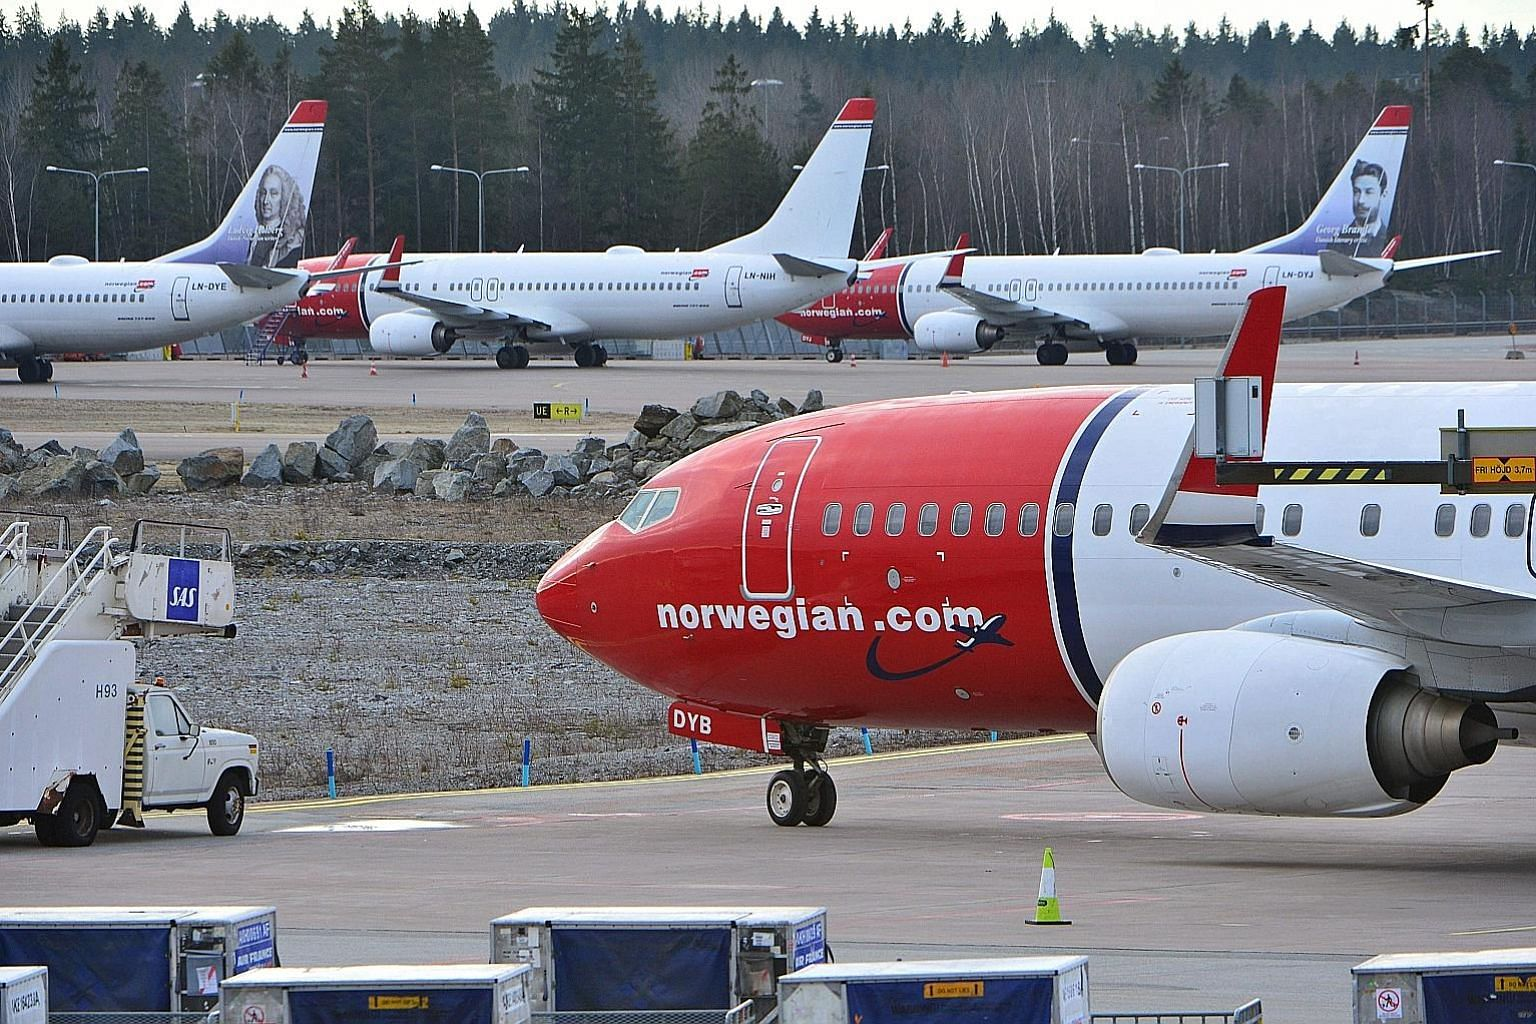 A year after launching the first Singapore-London budget flight with much fanfare, Norwegian Air has decided to exit the market. The last flight out of Singapore will be on Jan 11 next year.